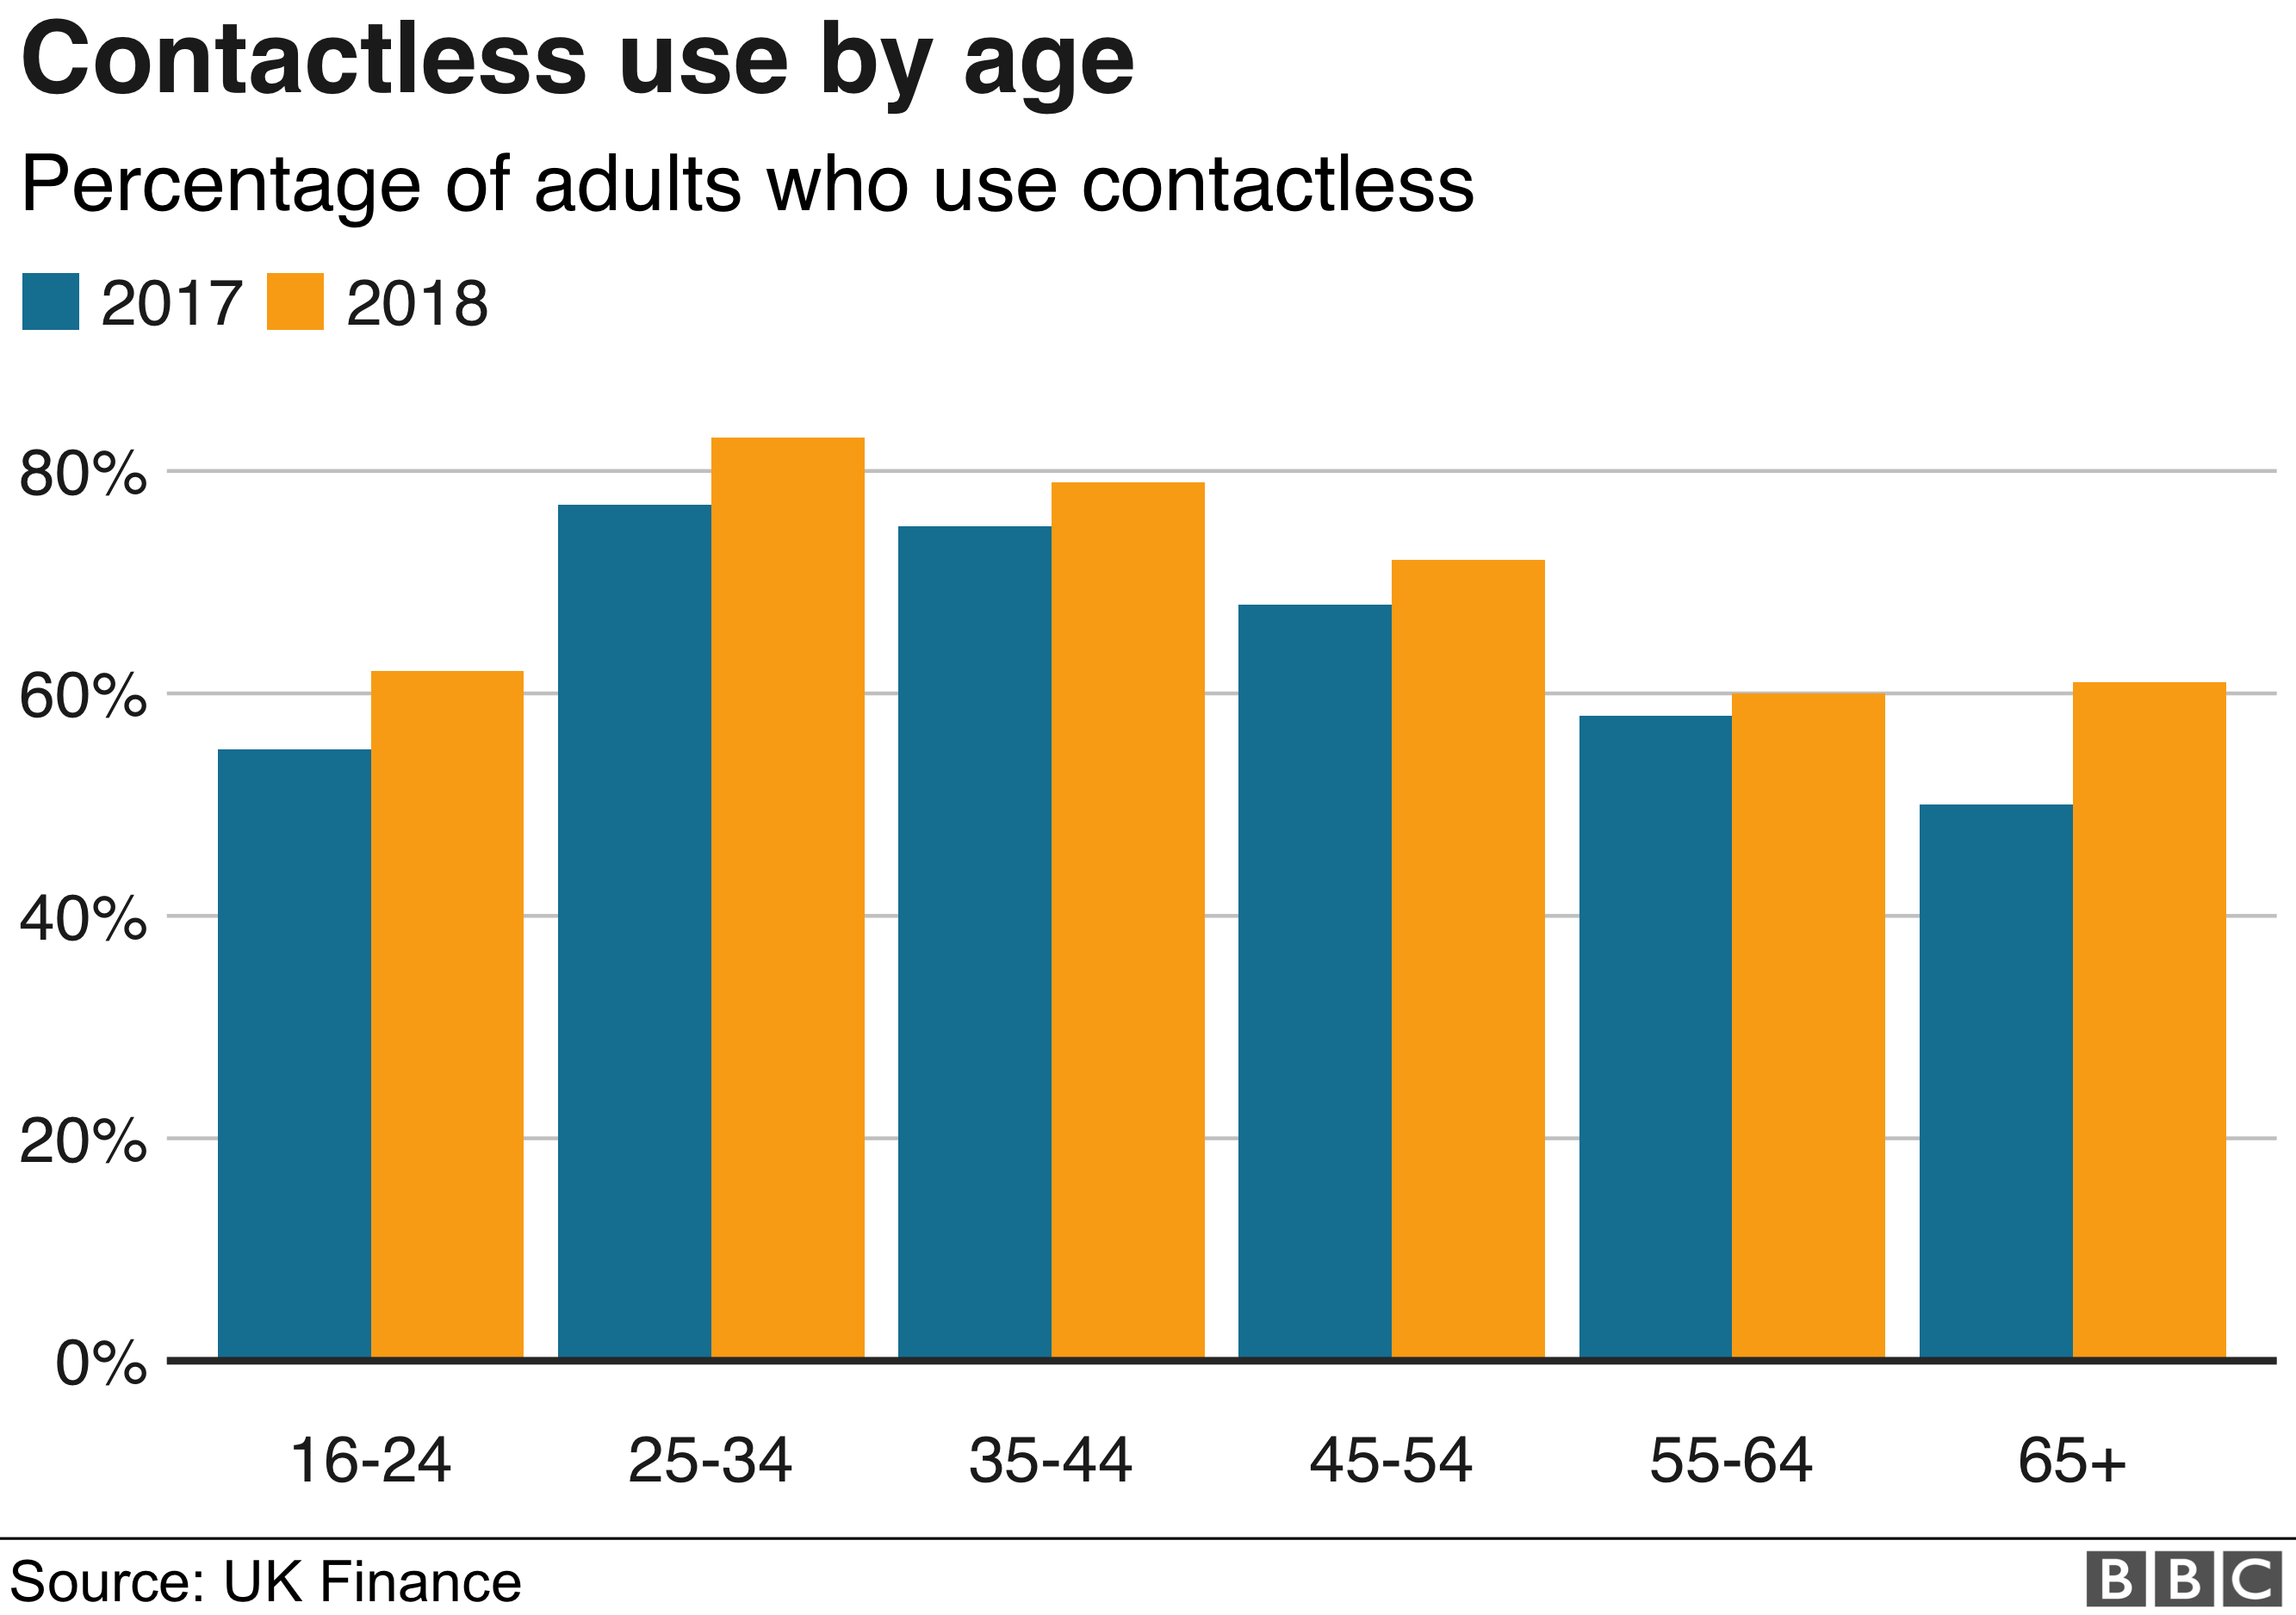 Contactless use by age graphic